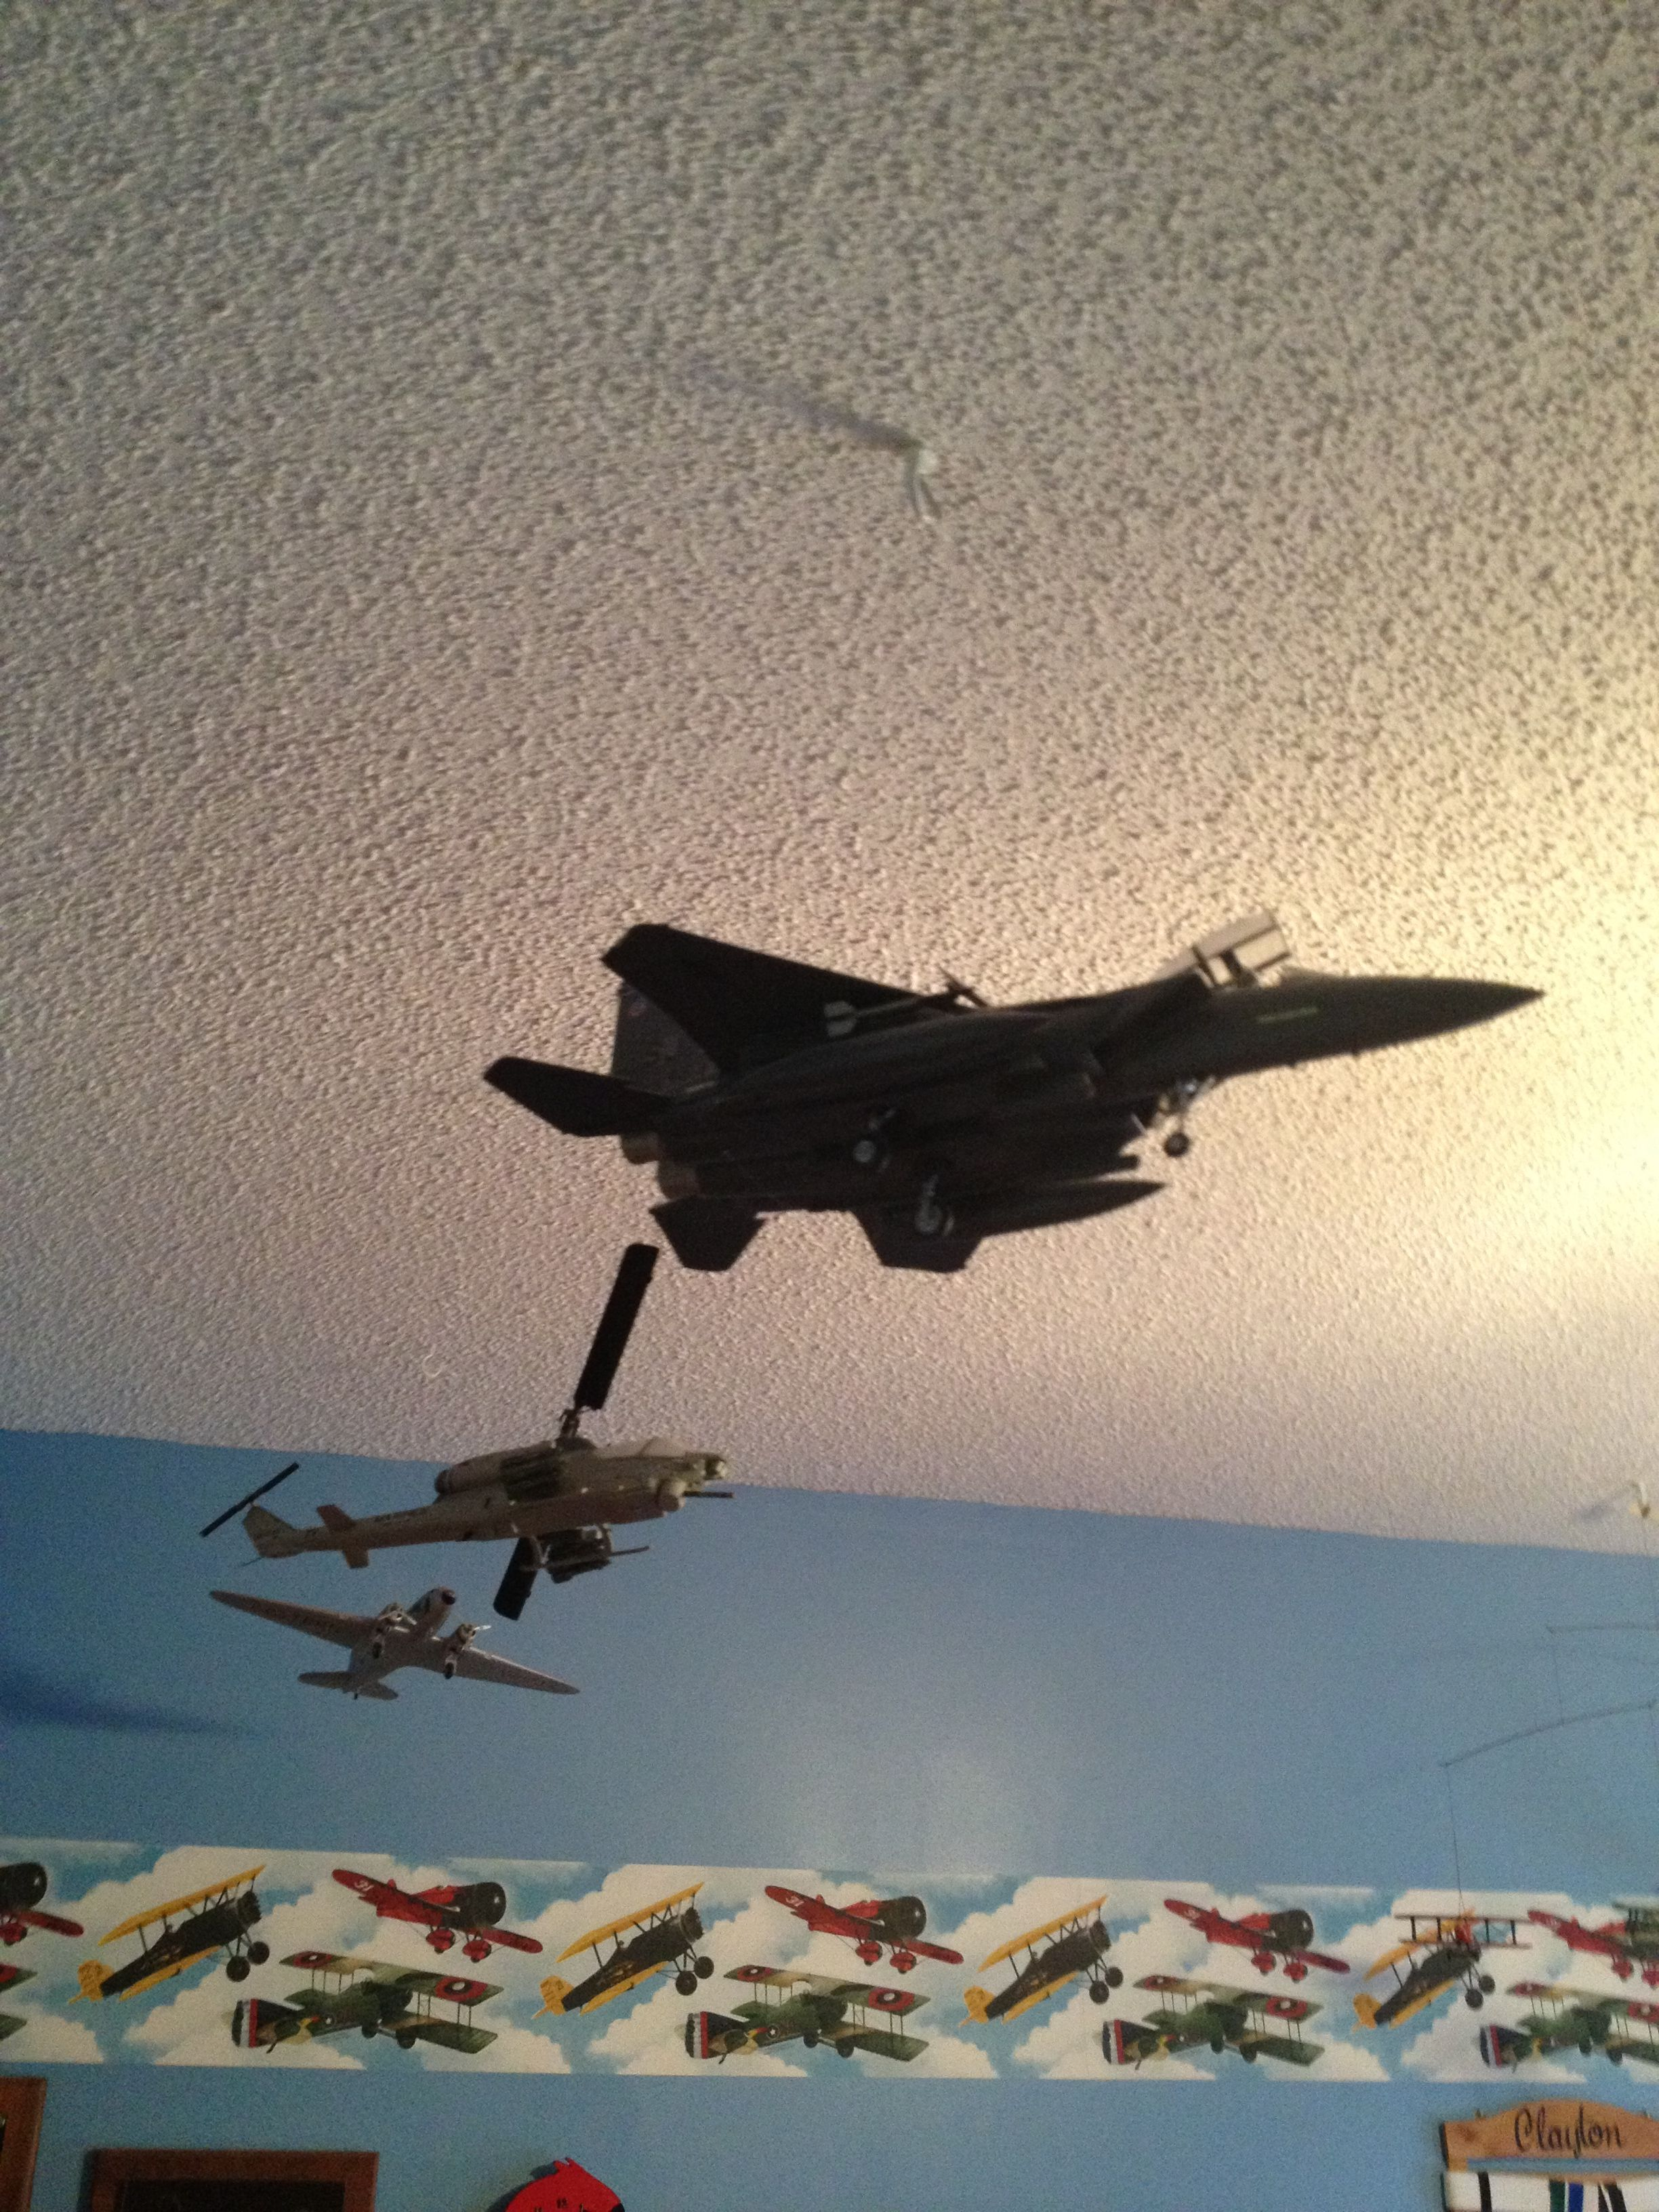 Boys Bedroom Idea Hang Model Airplanes From The Ceiling